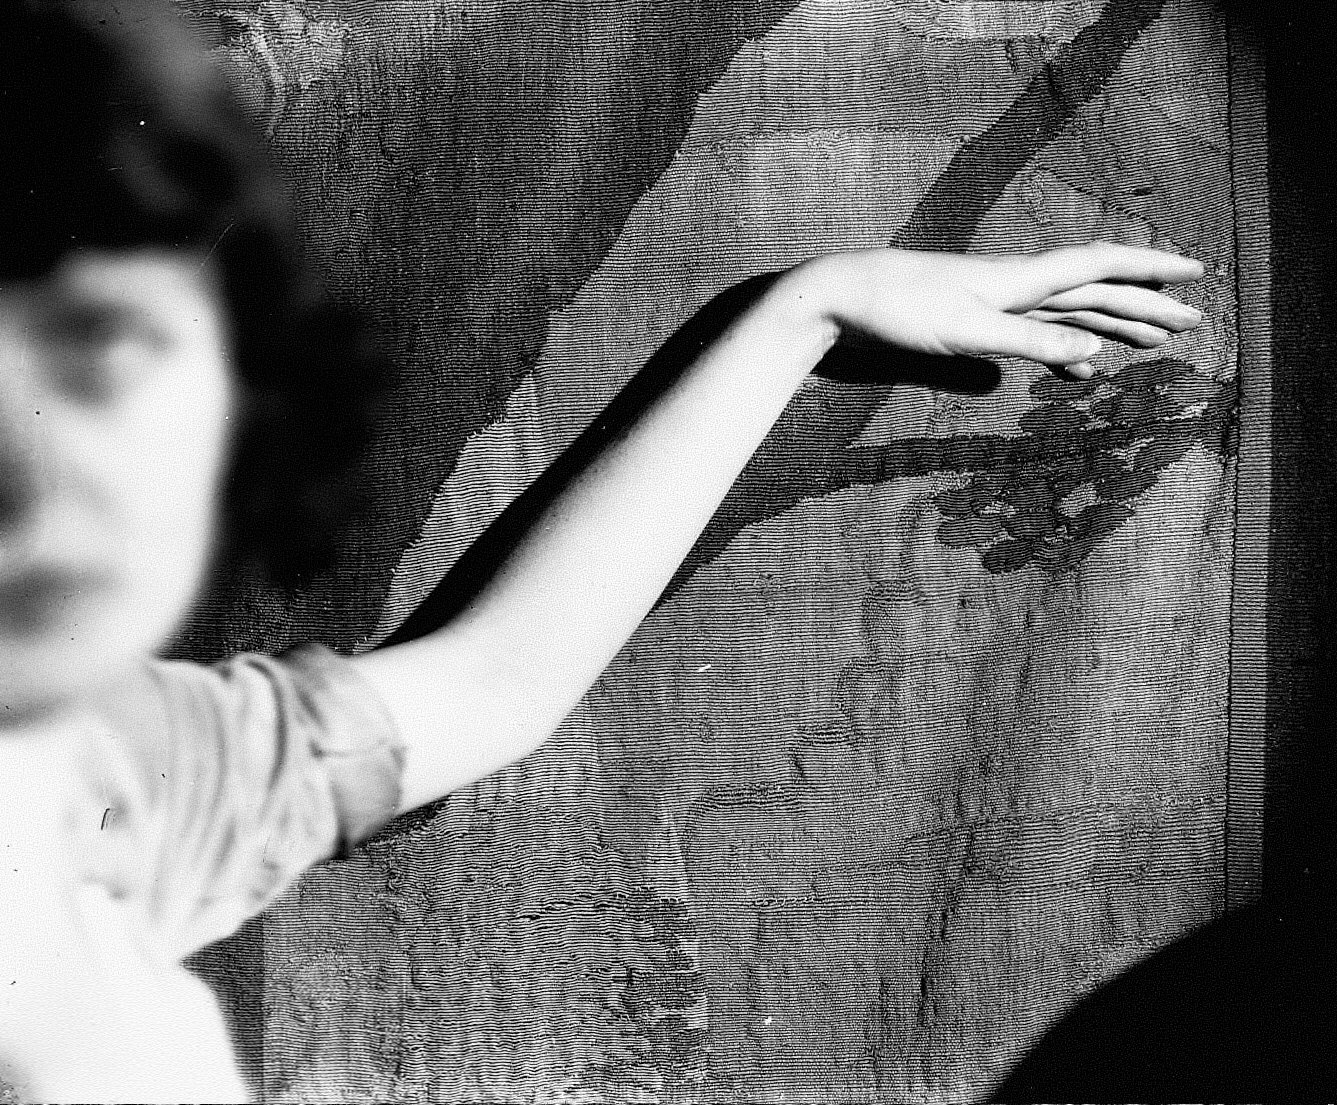 Woman with arm against wall